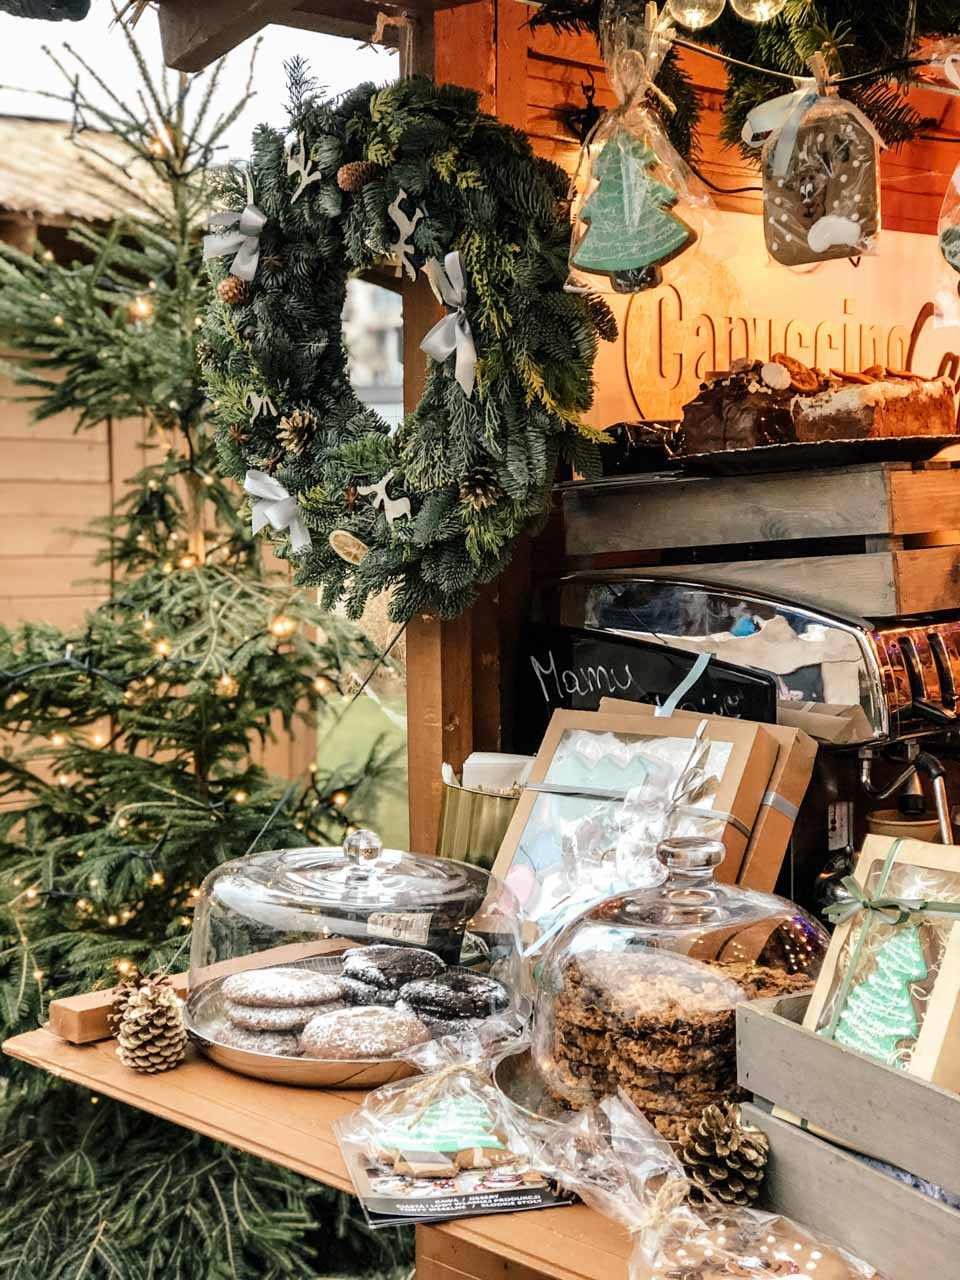 A wreath, gingerbread and cookies at the Christmas market in Gdynia